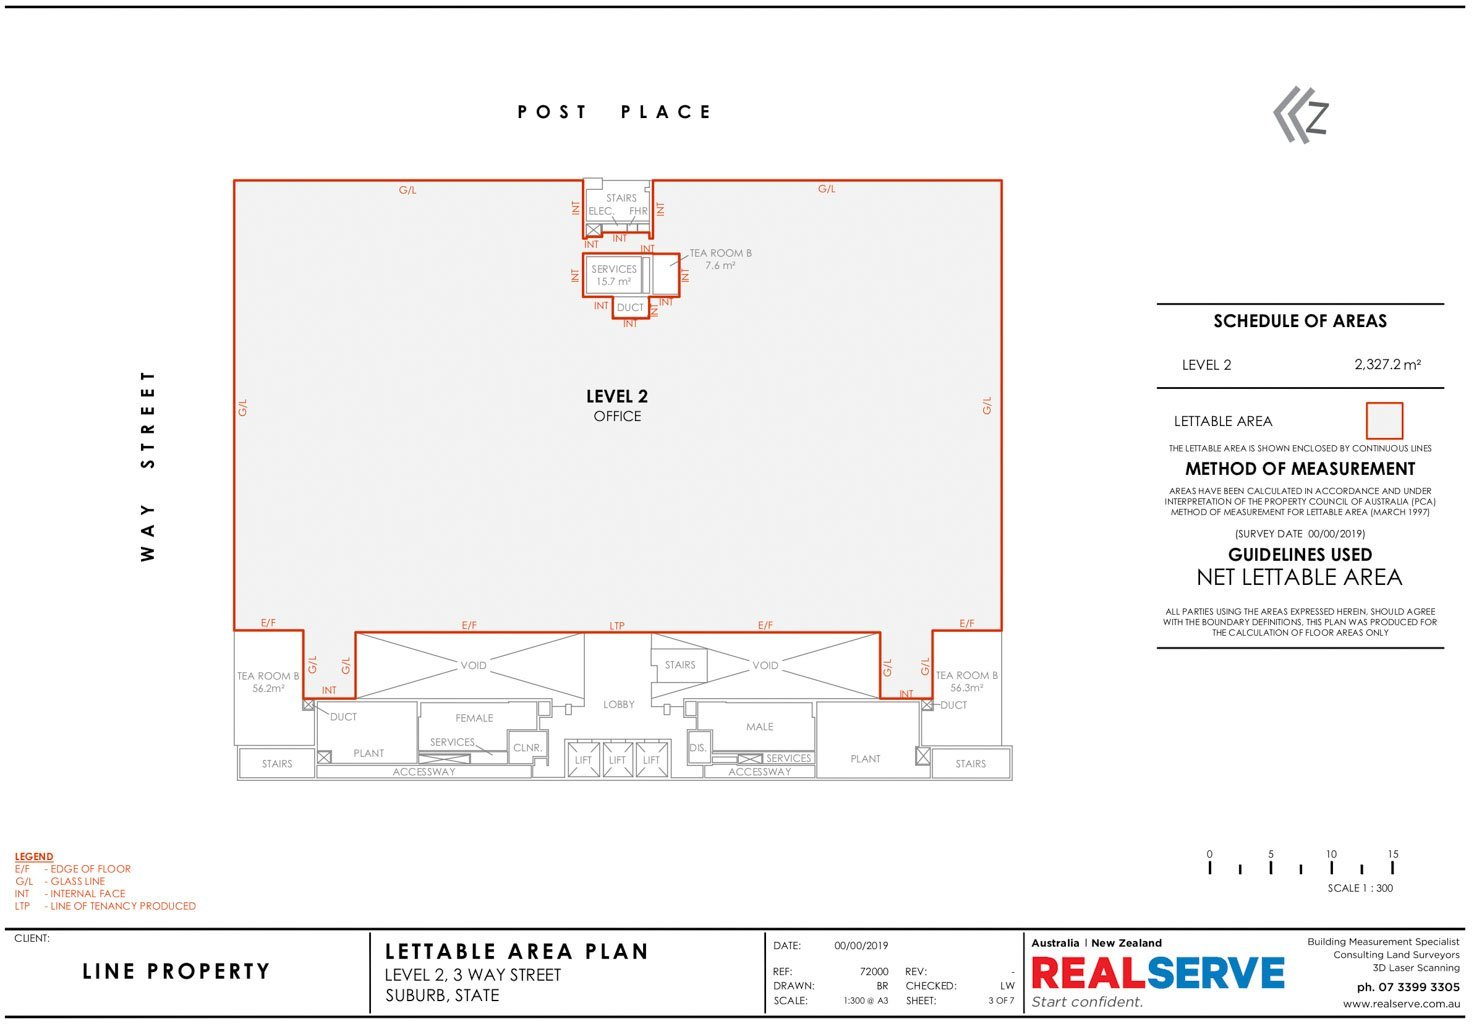 REALSERVE NET LETTABLE AREA SAMPLE DRAWING FOR A BUILDING AREA